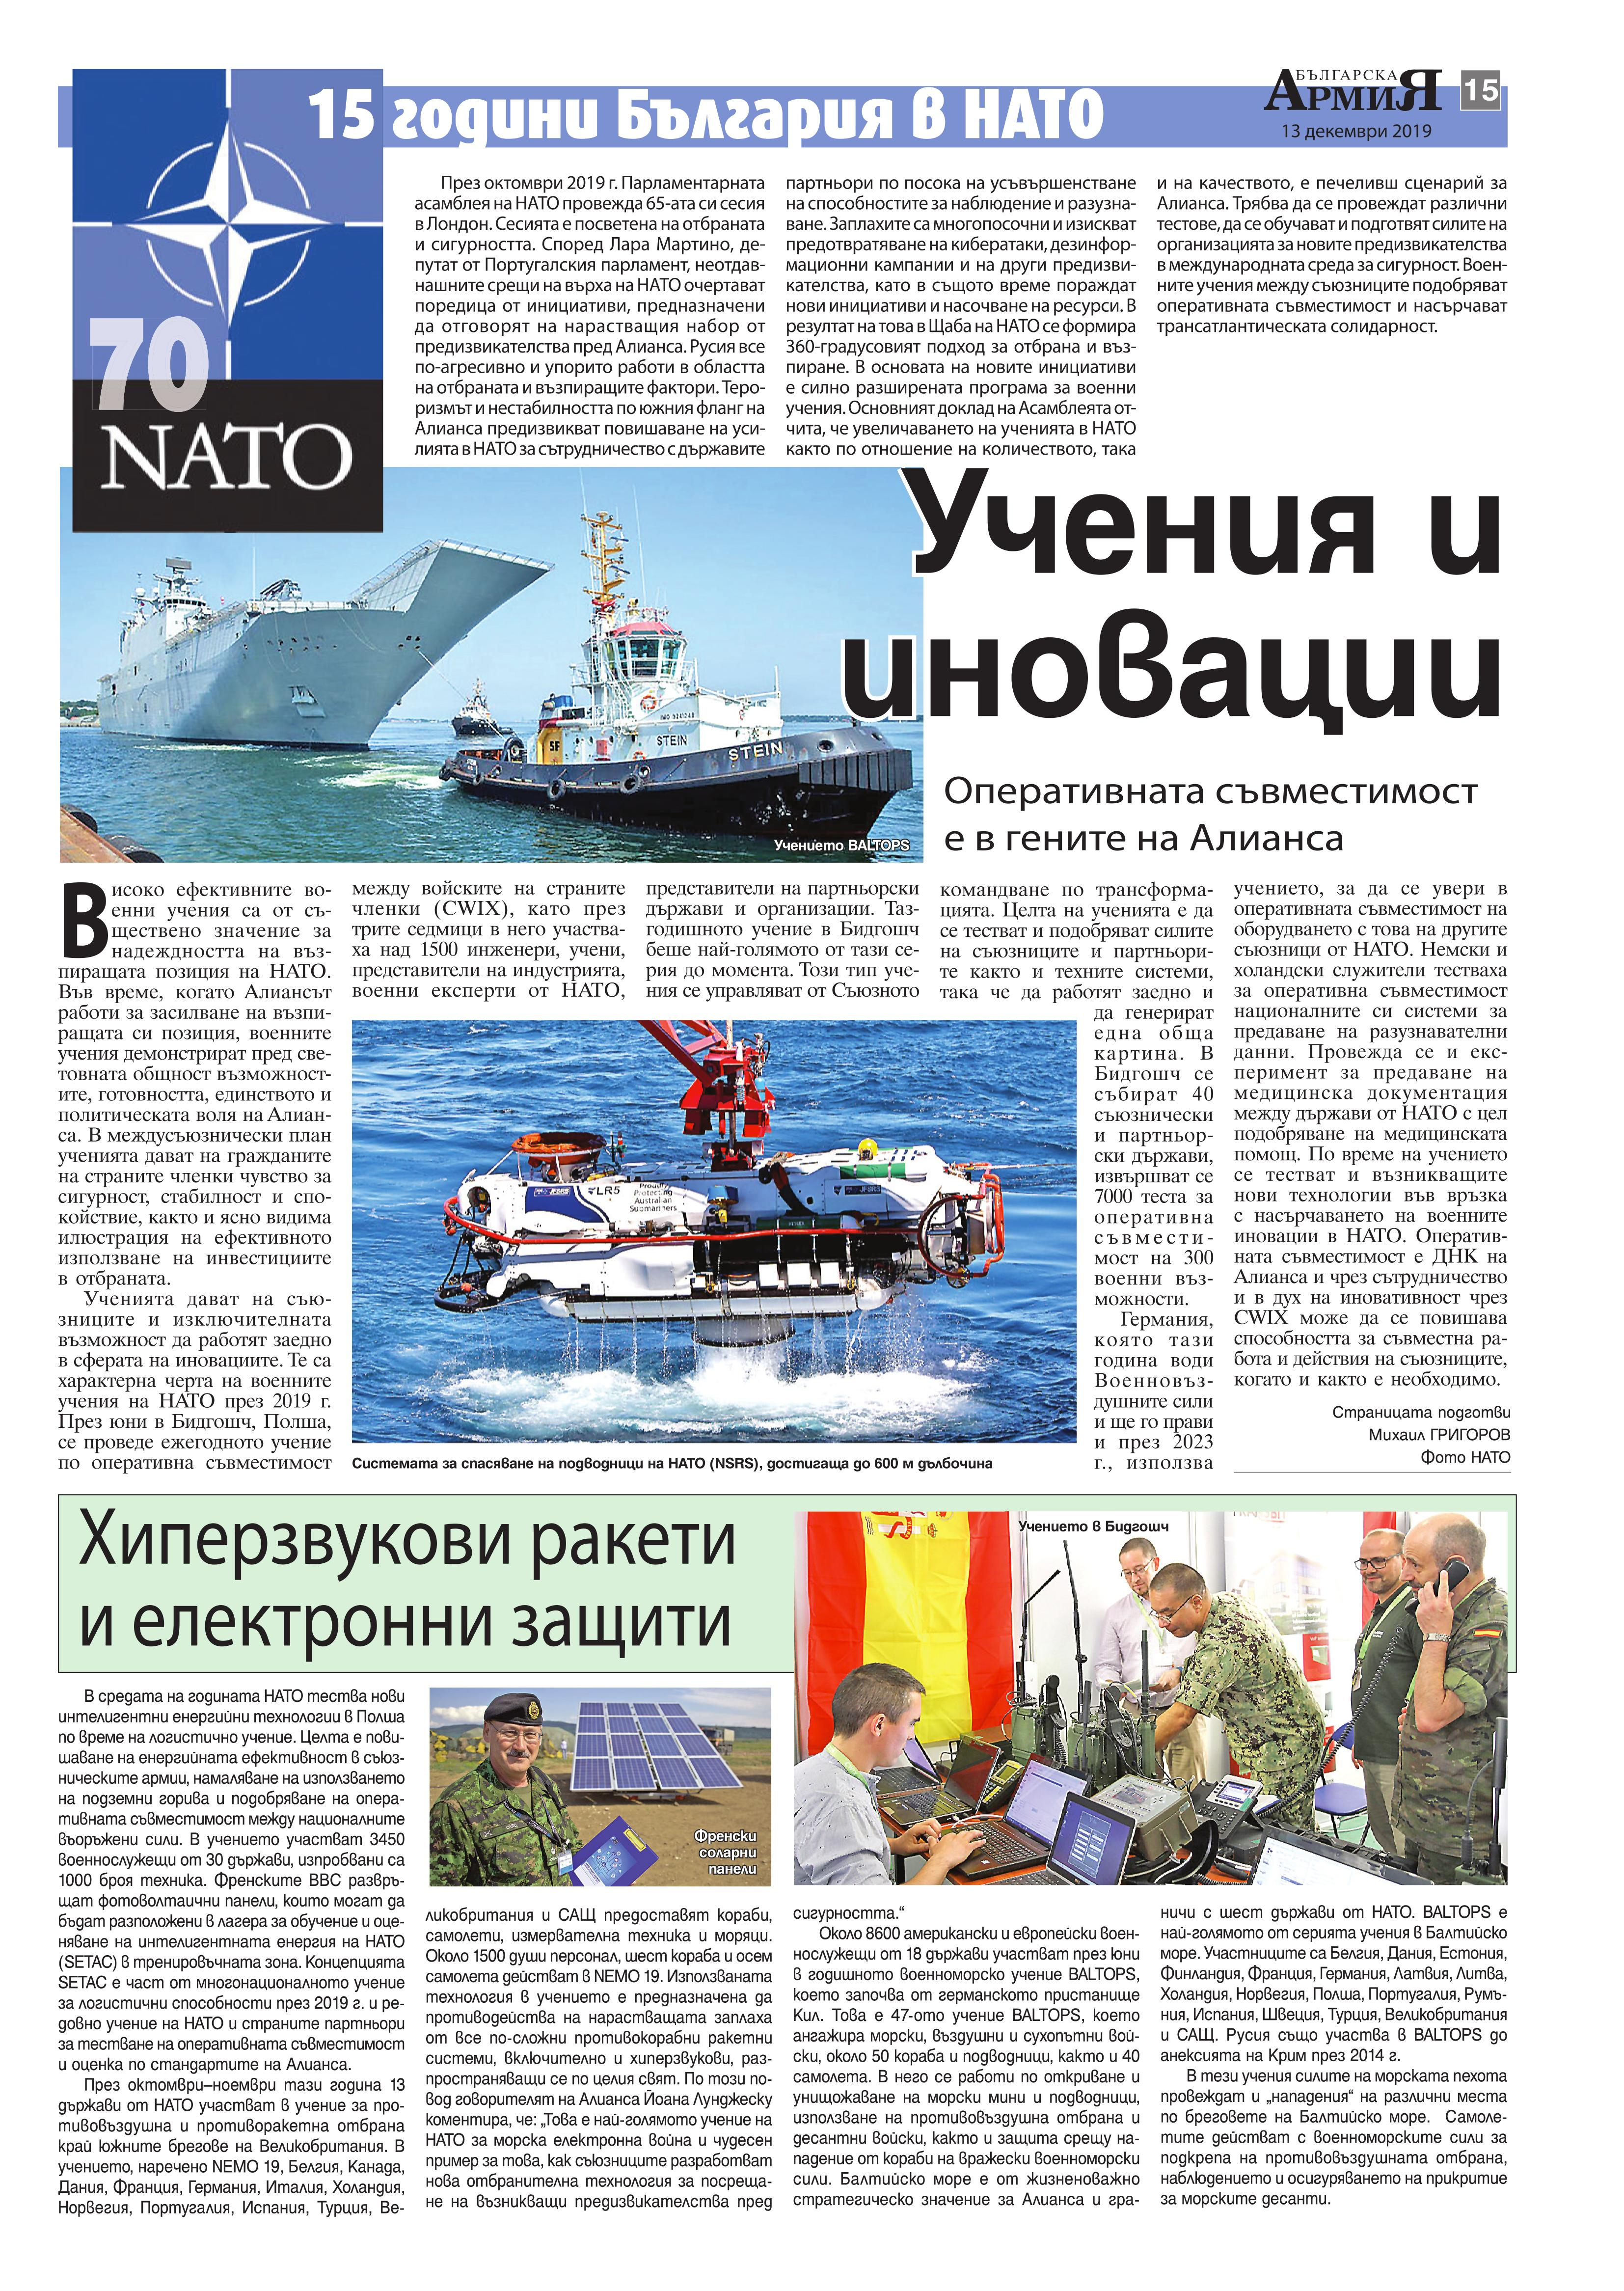 https://armymedia.bg/wp-content/uploads/2015/06/15.page1_-119.jpg